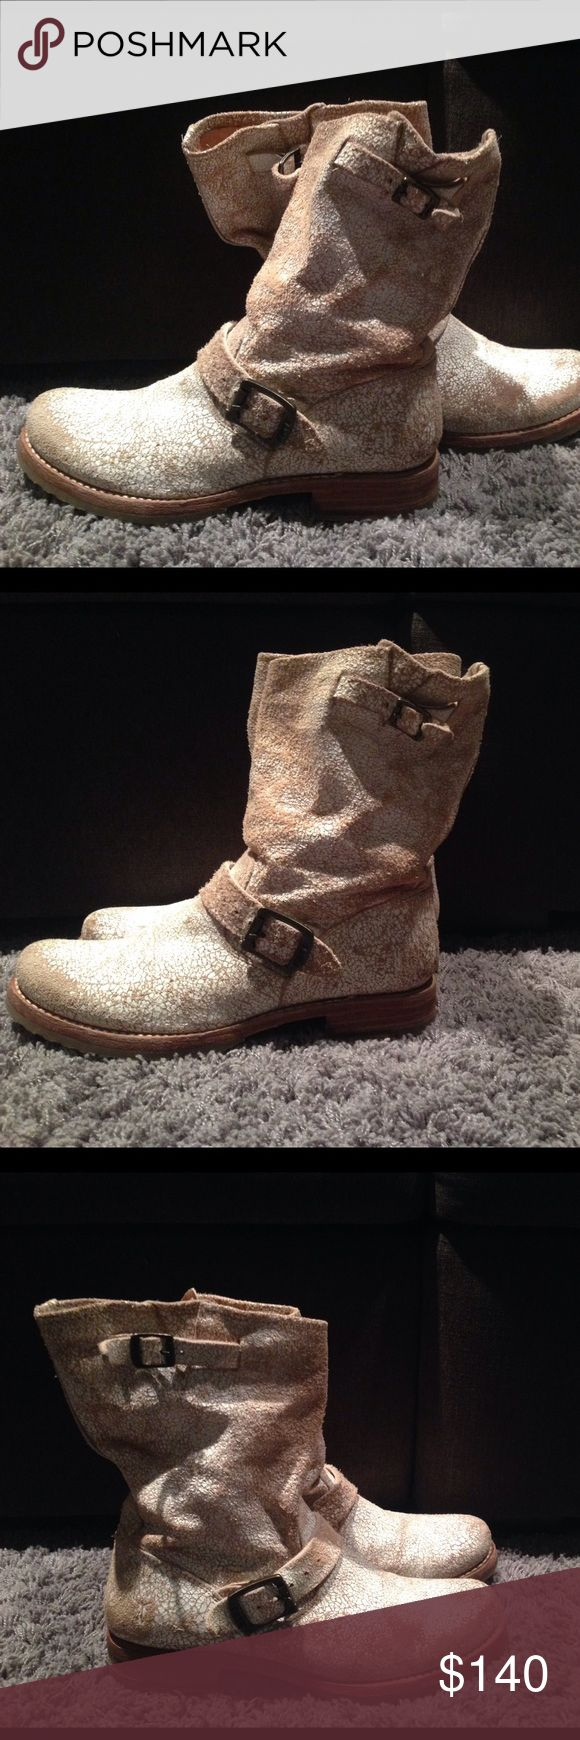 Frye Veronica short Frye Veronica Short size 8 the boots have a crackle white painted look, very cool looking!! Never got the chance to wear them!! NWOT!!! Frye Shoes Combat & Moto Boots